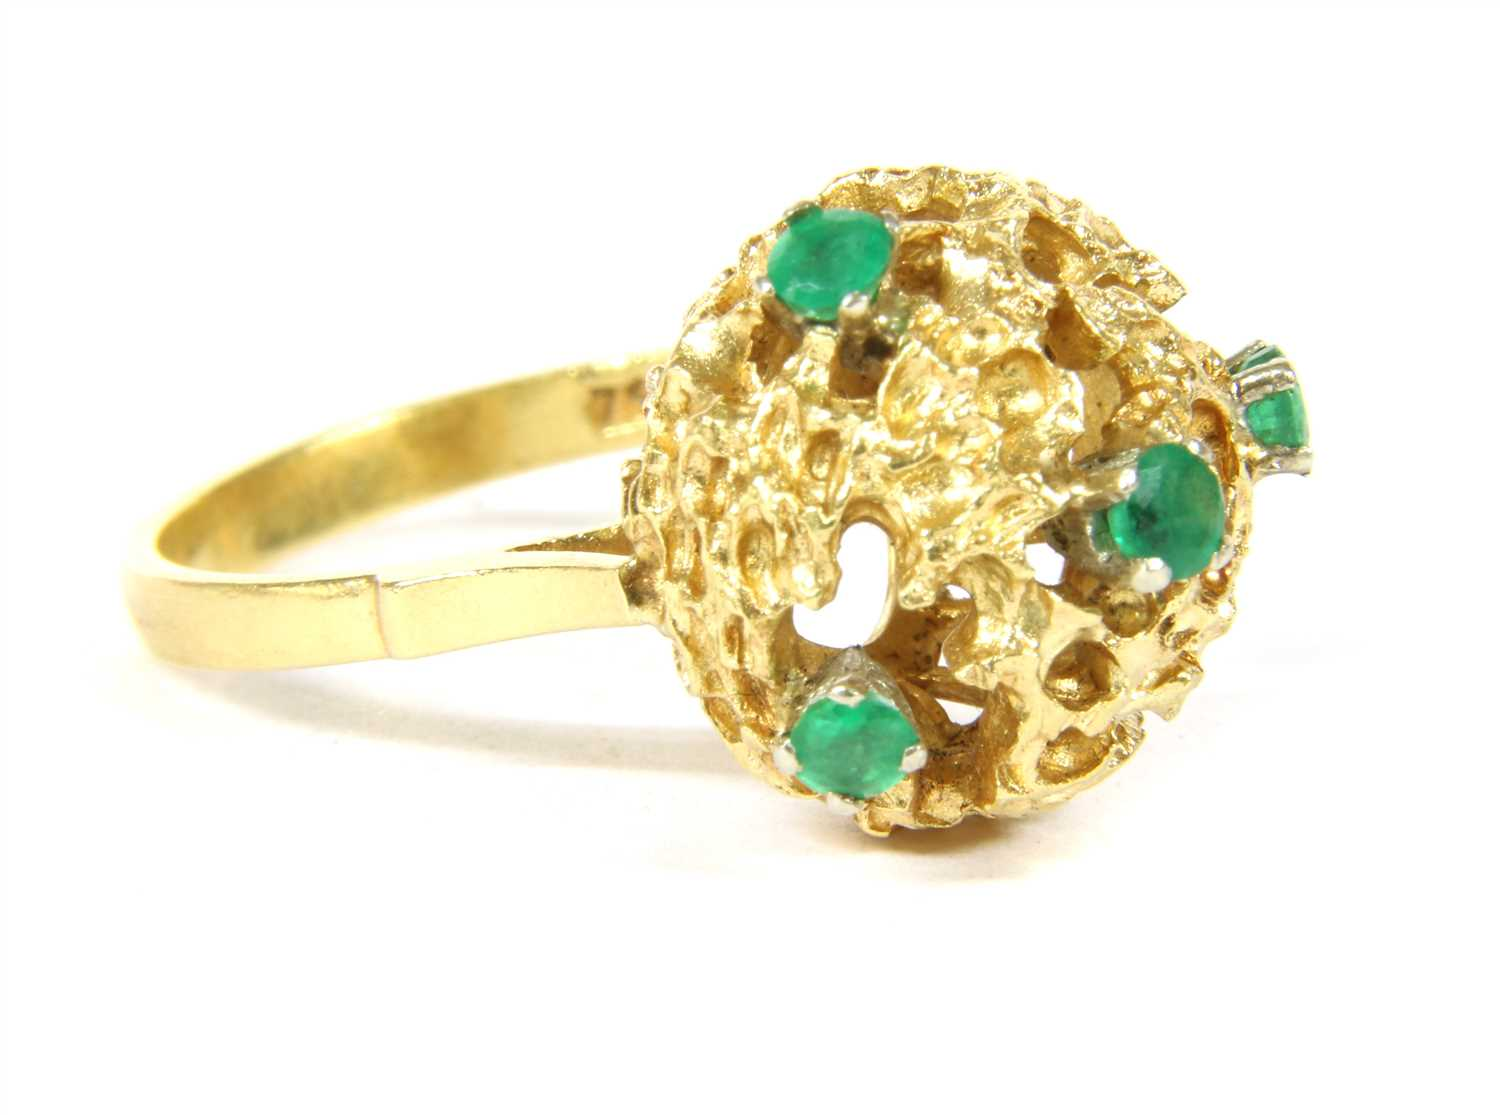 Lot 1018-An Italian 18ct gold emerald ring